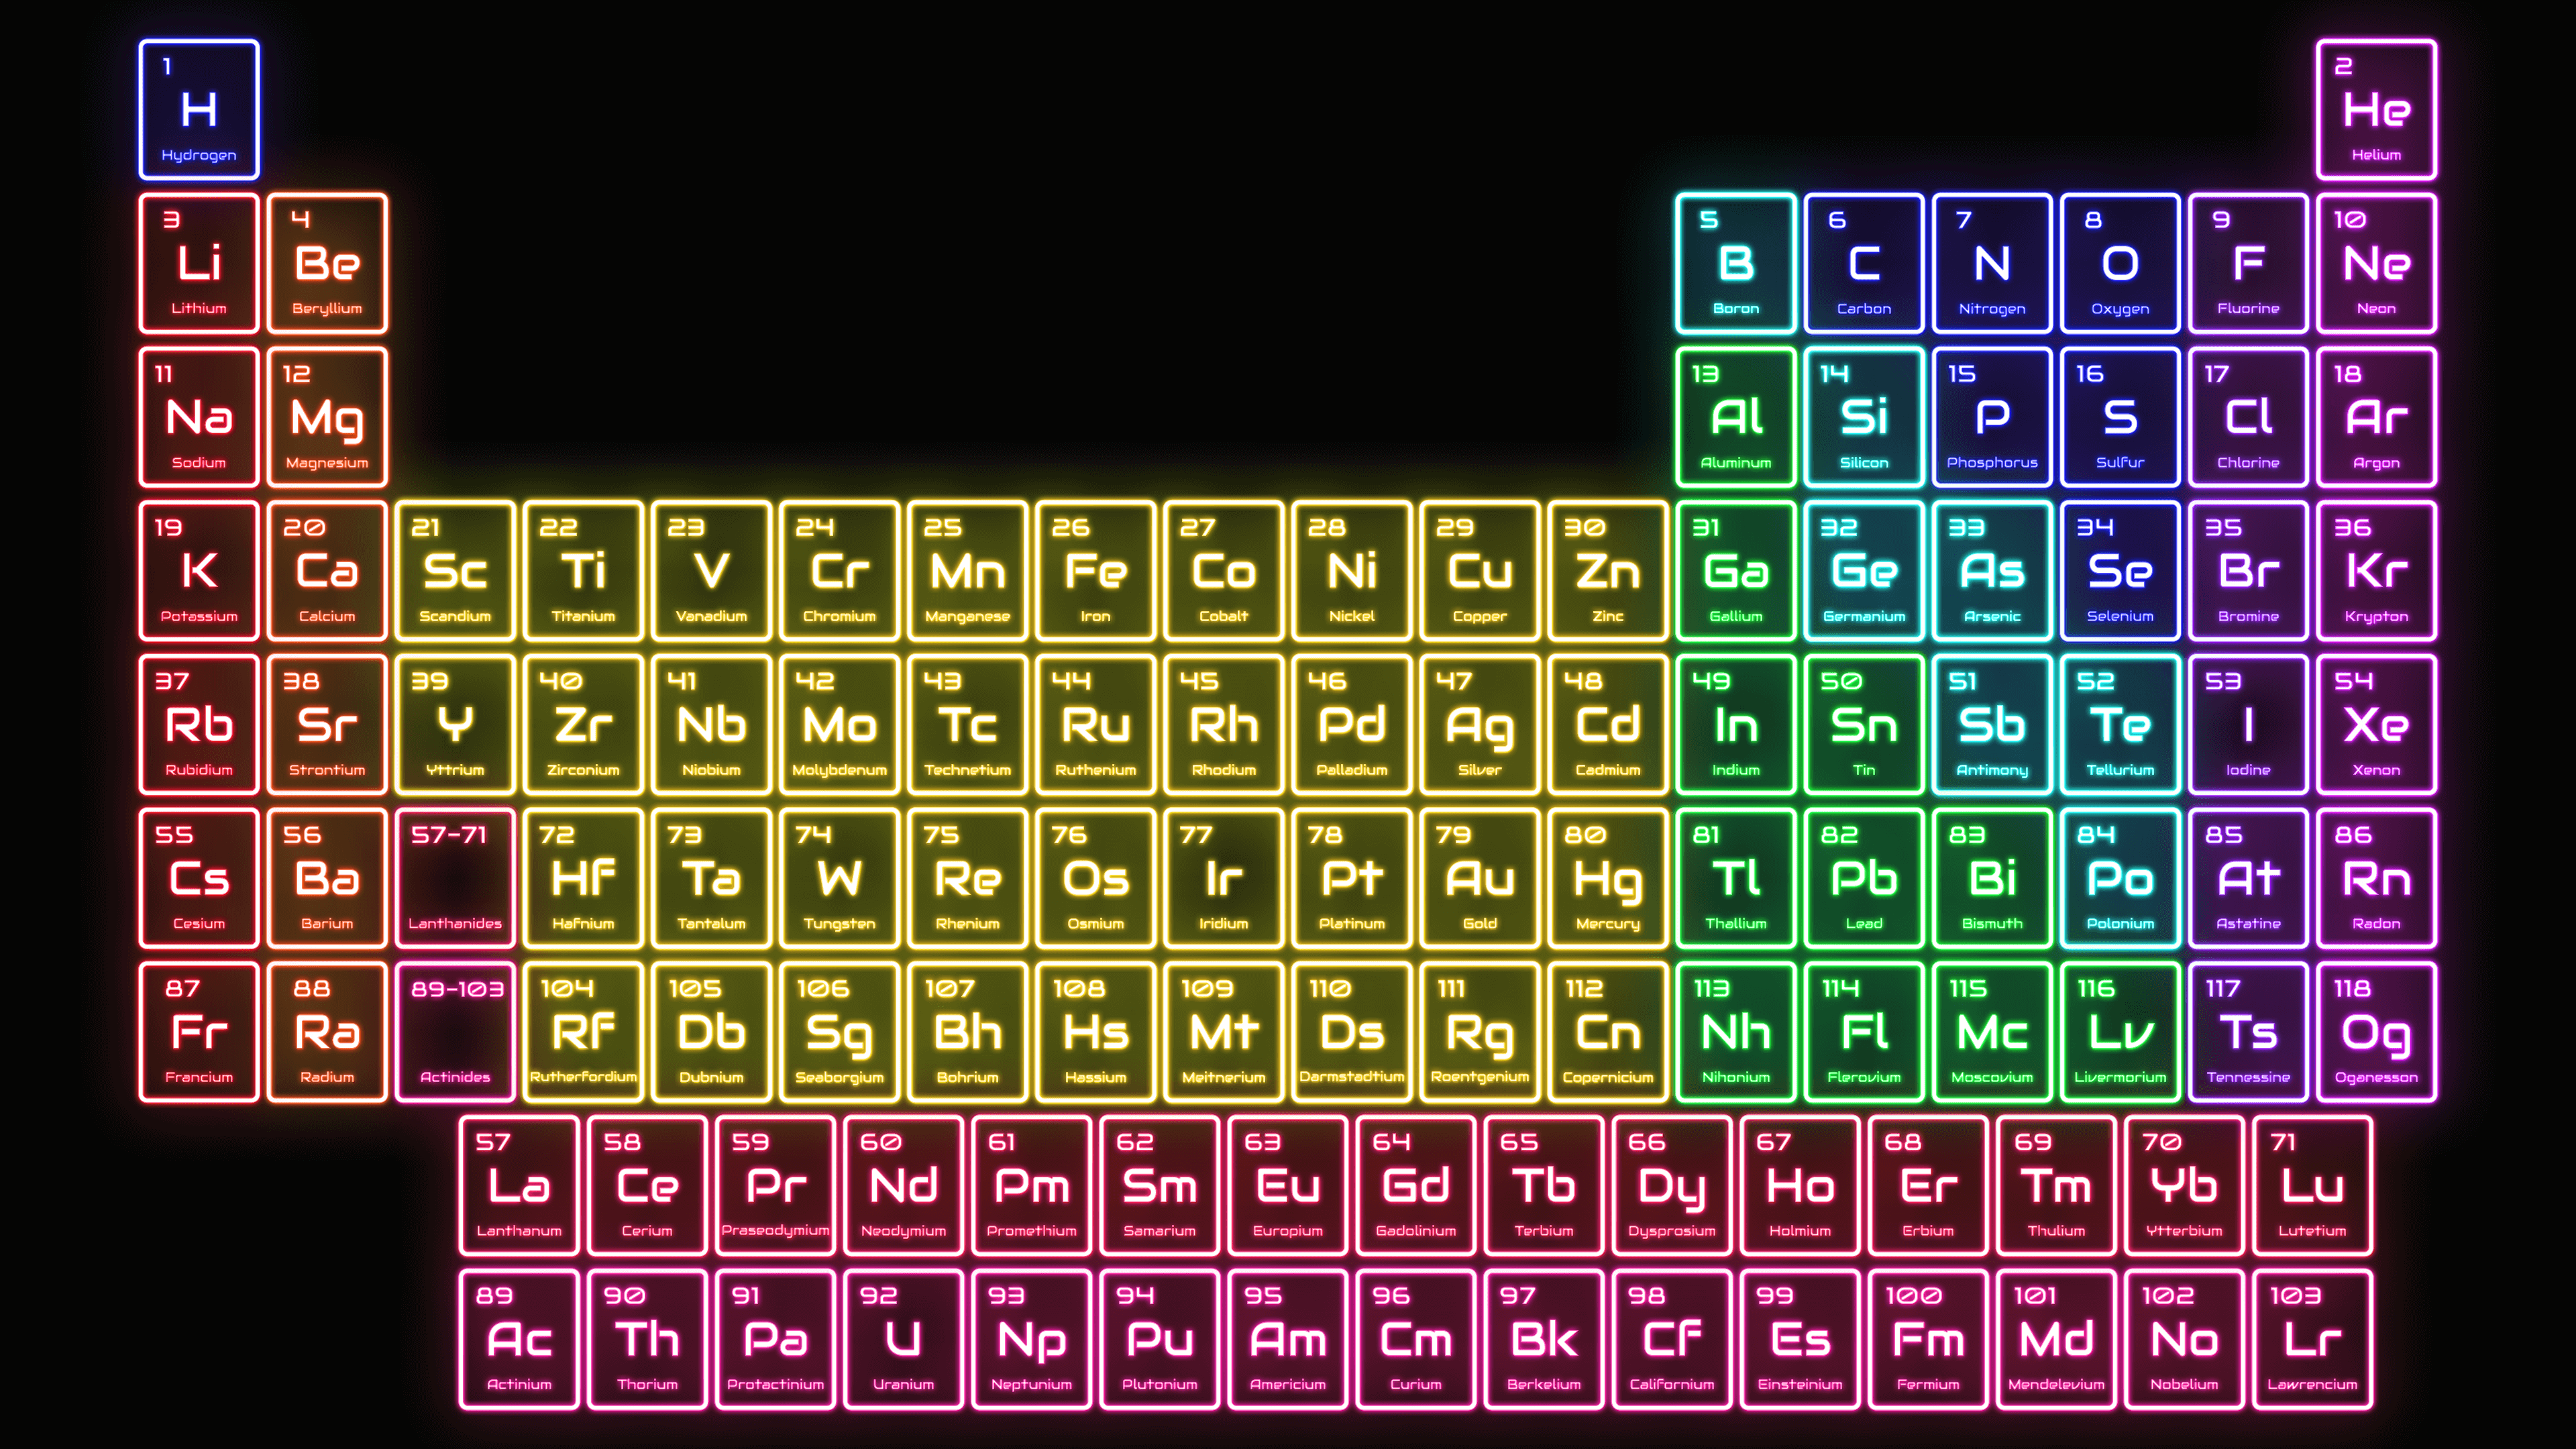 Color Neon Lights Periodic Table Wallpaper